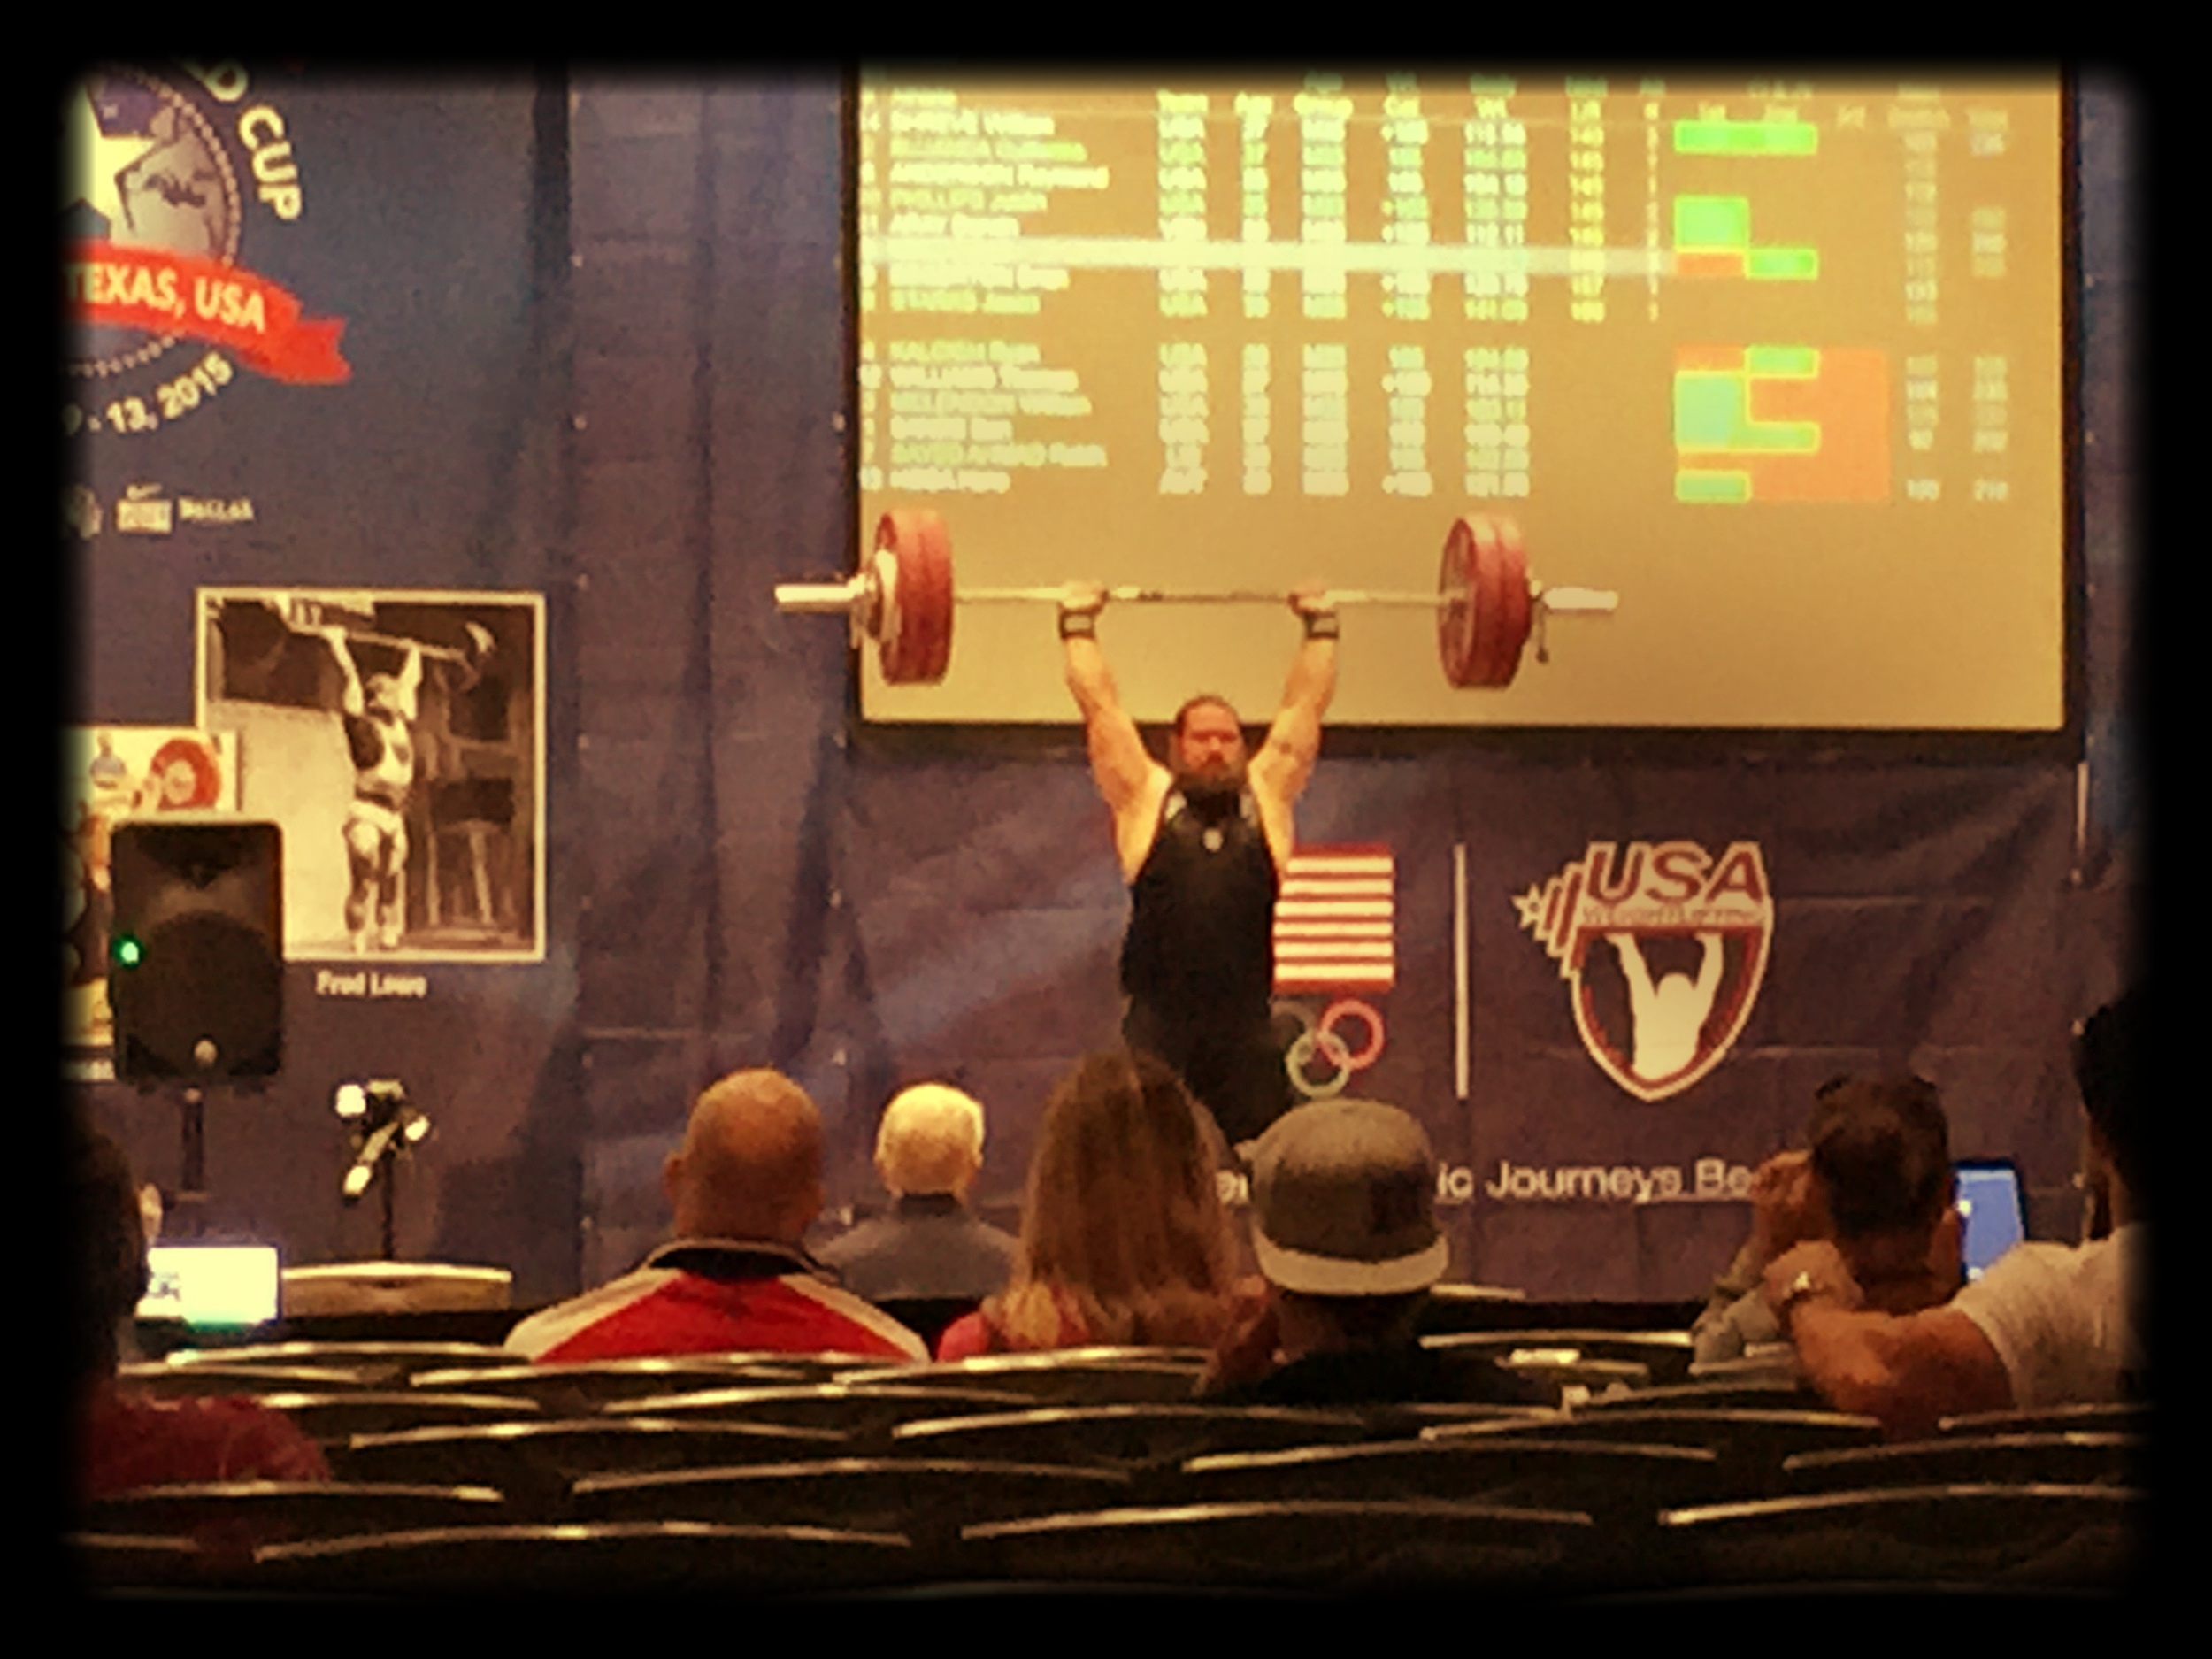 From the Masters Weightlifting Championship in Dallas this week